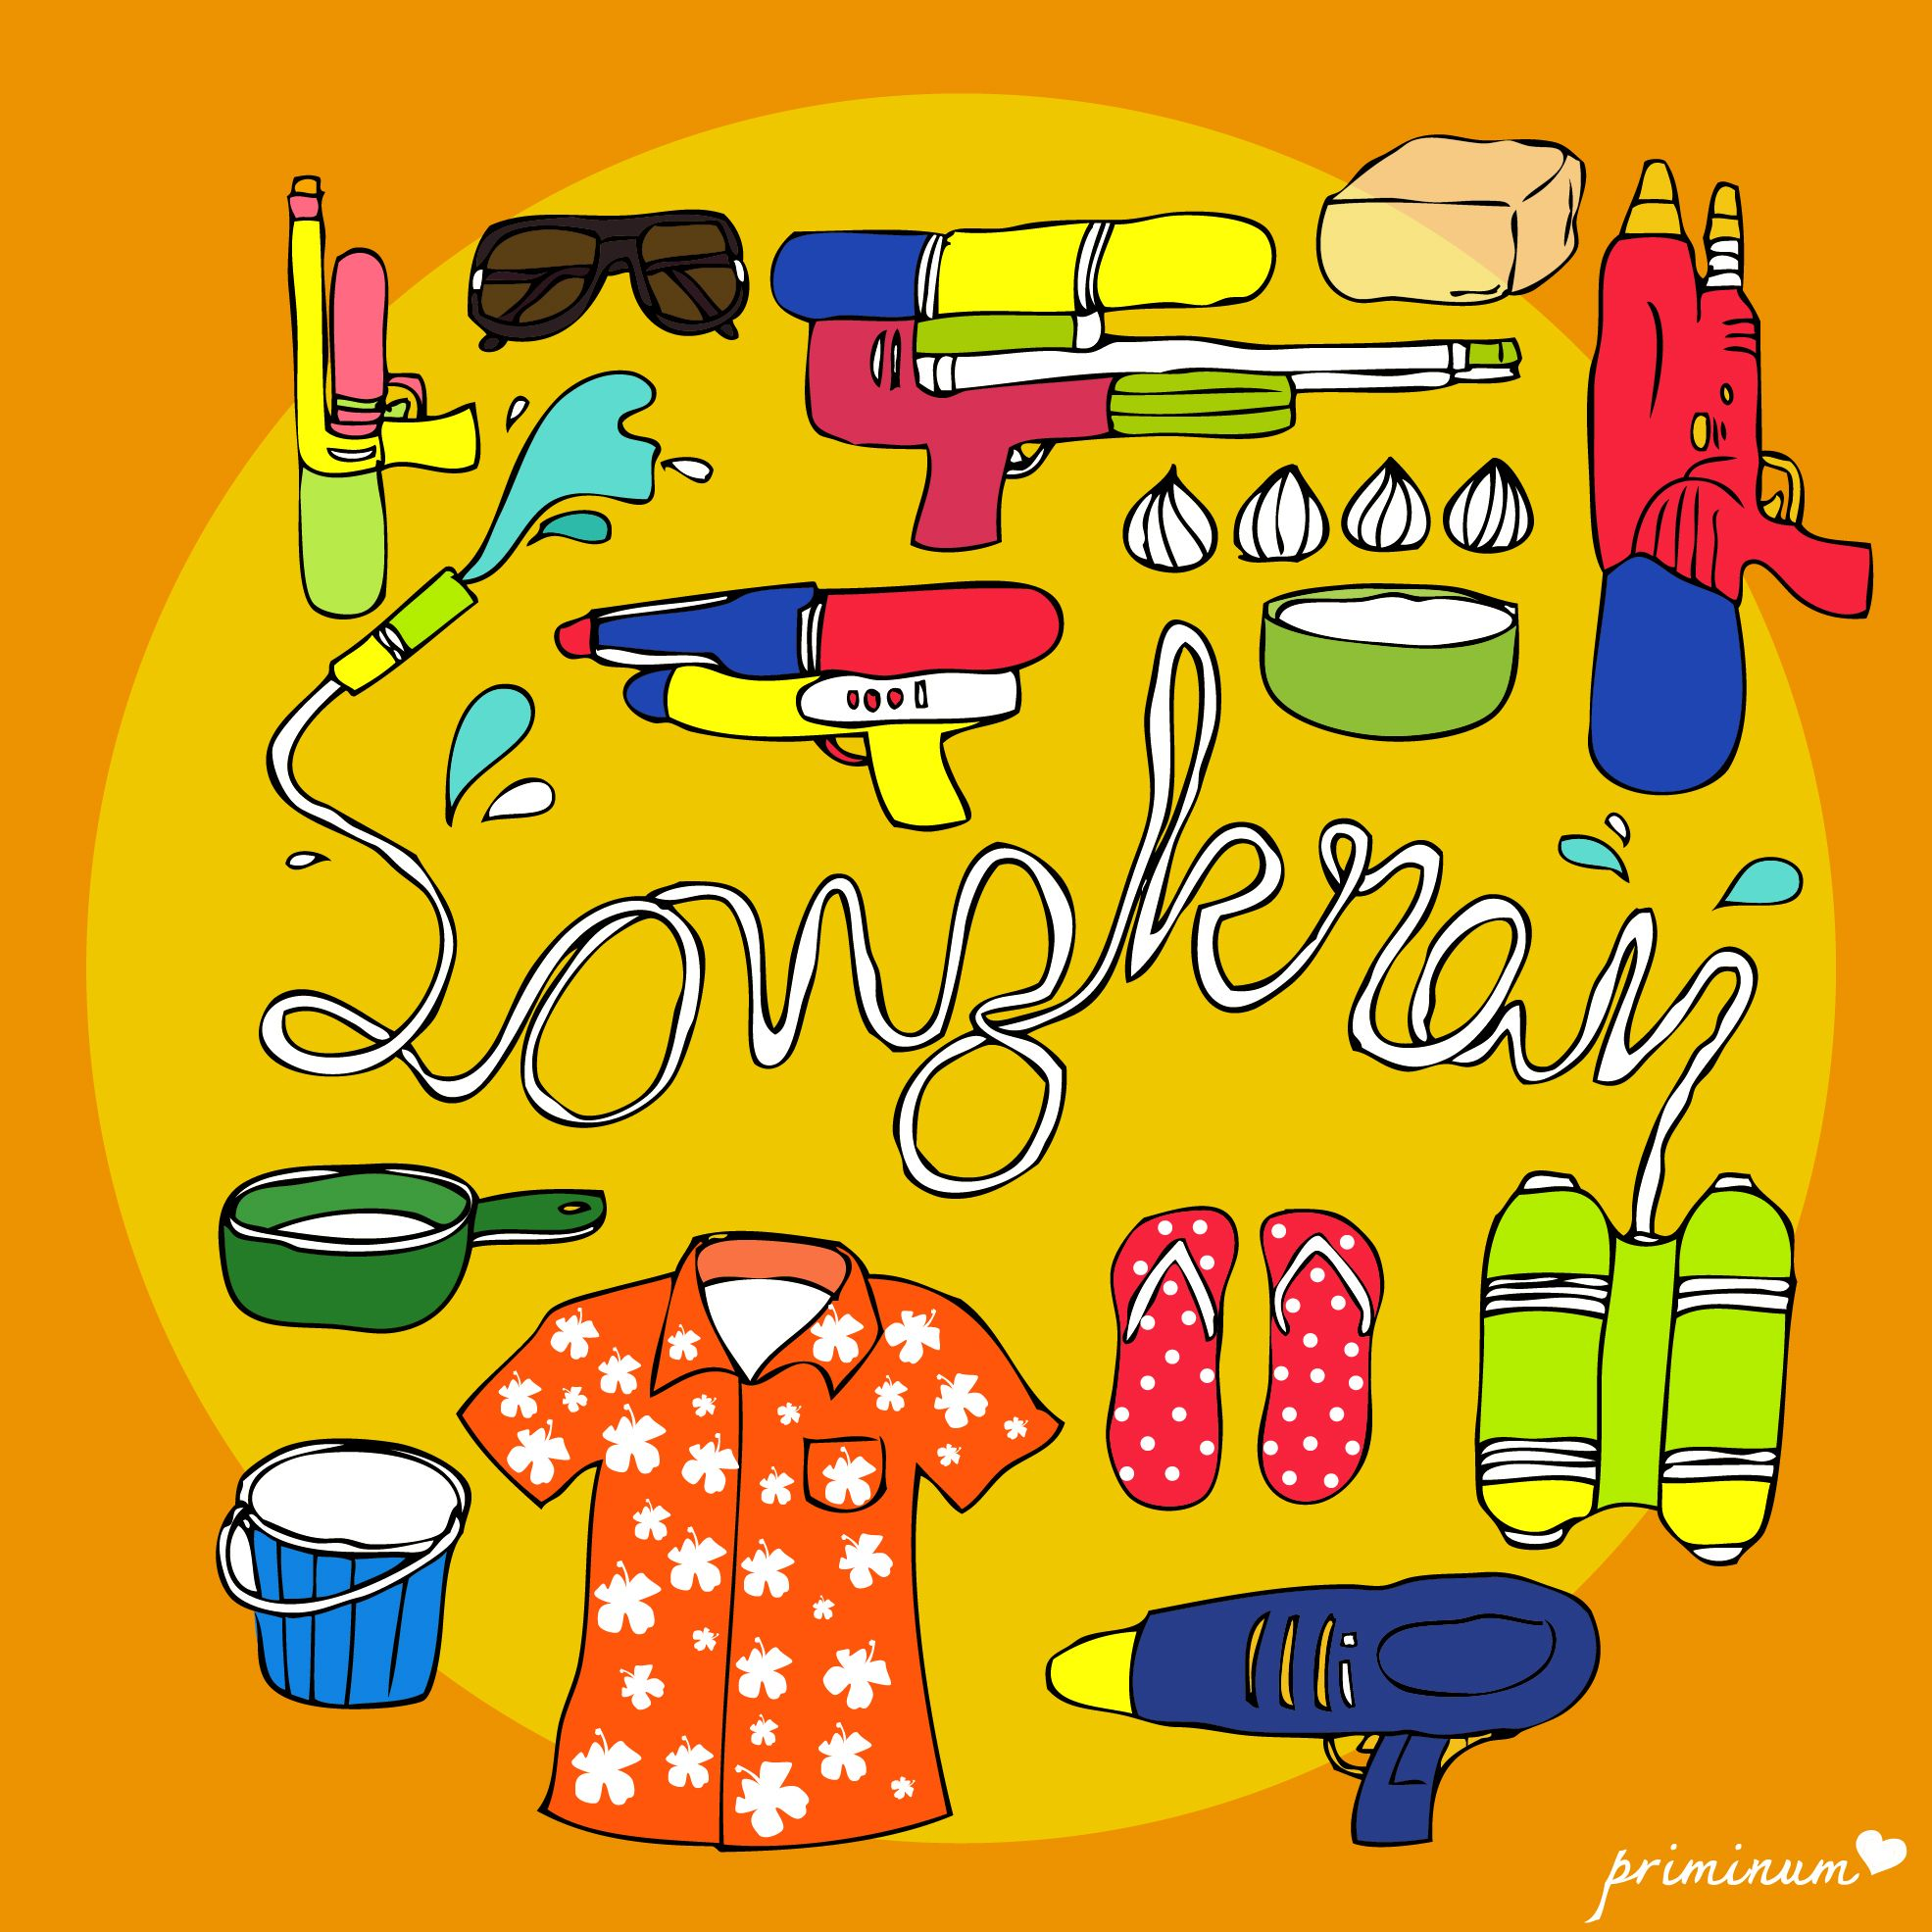 Prop For Songkran S Day Illustration Illustrator Drawing Draw